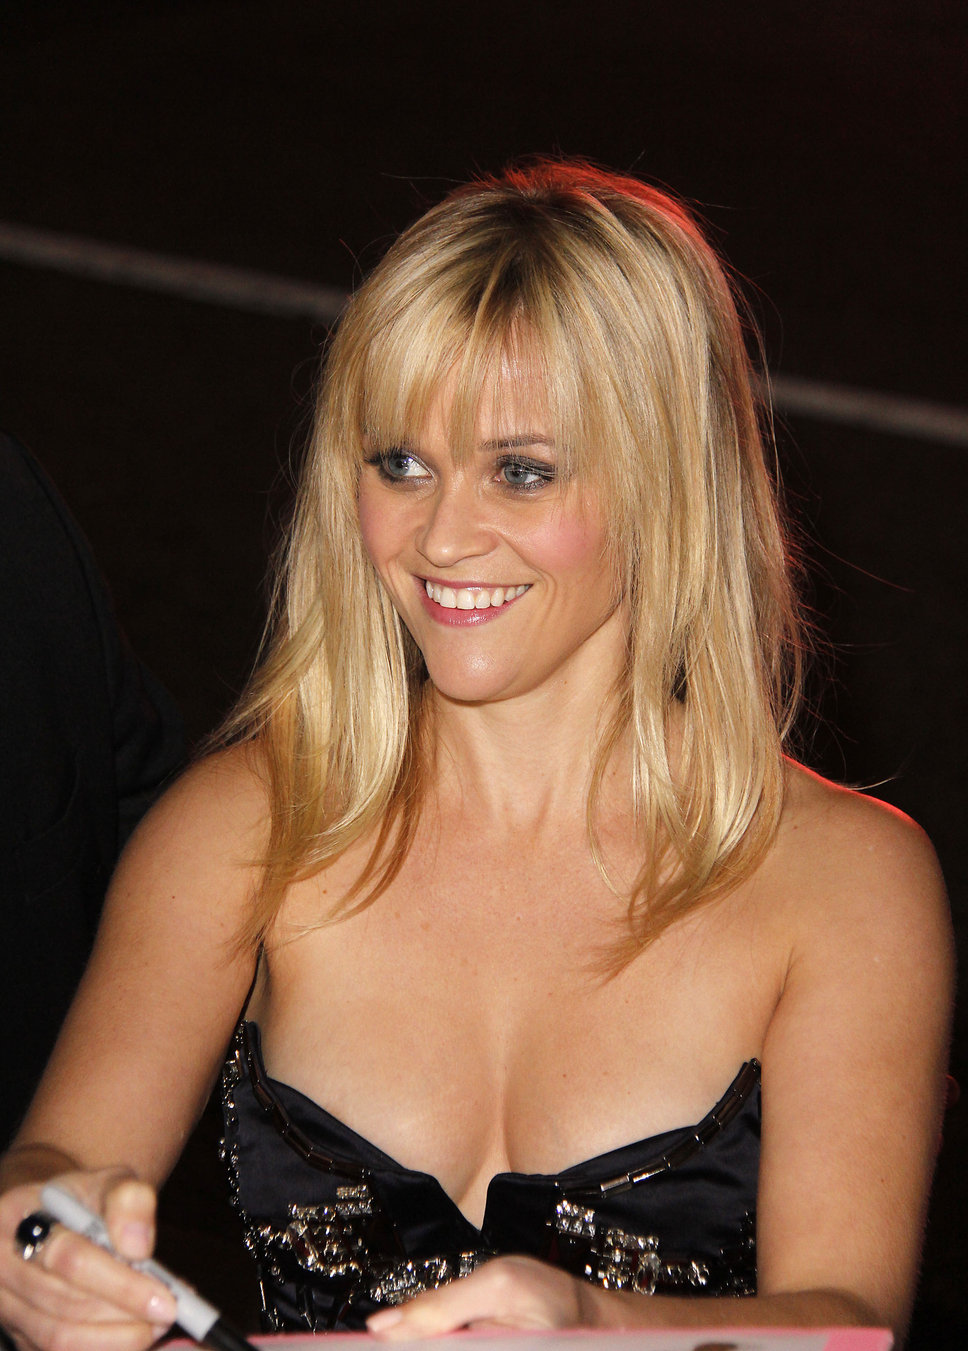 Reese Witherspoon Weight Height Body Measurement  Bra Size  Diet     Rare Unseen  Child Hood  Hot Photos of Reese Witherspoon